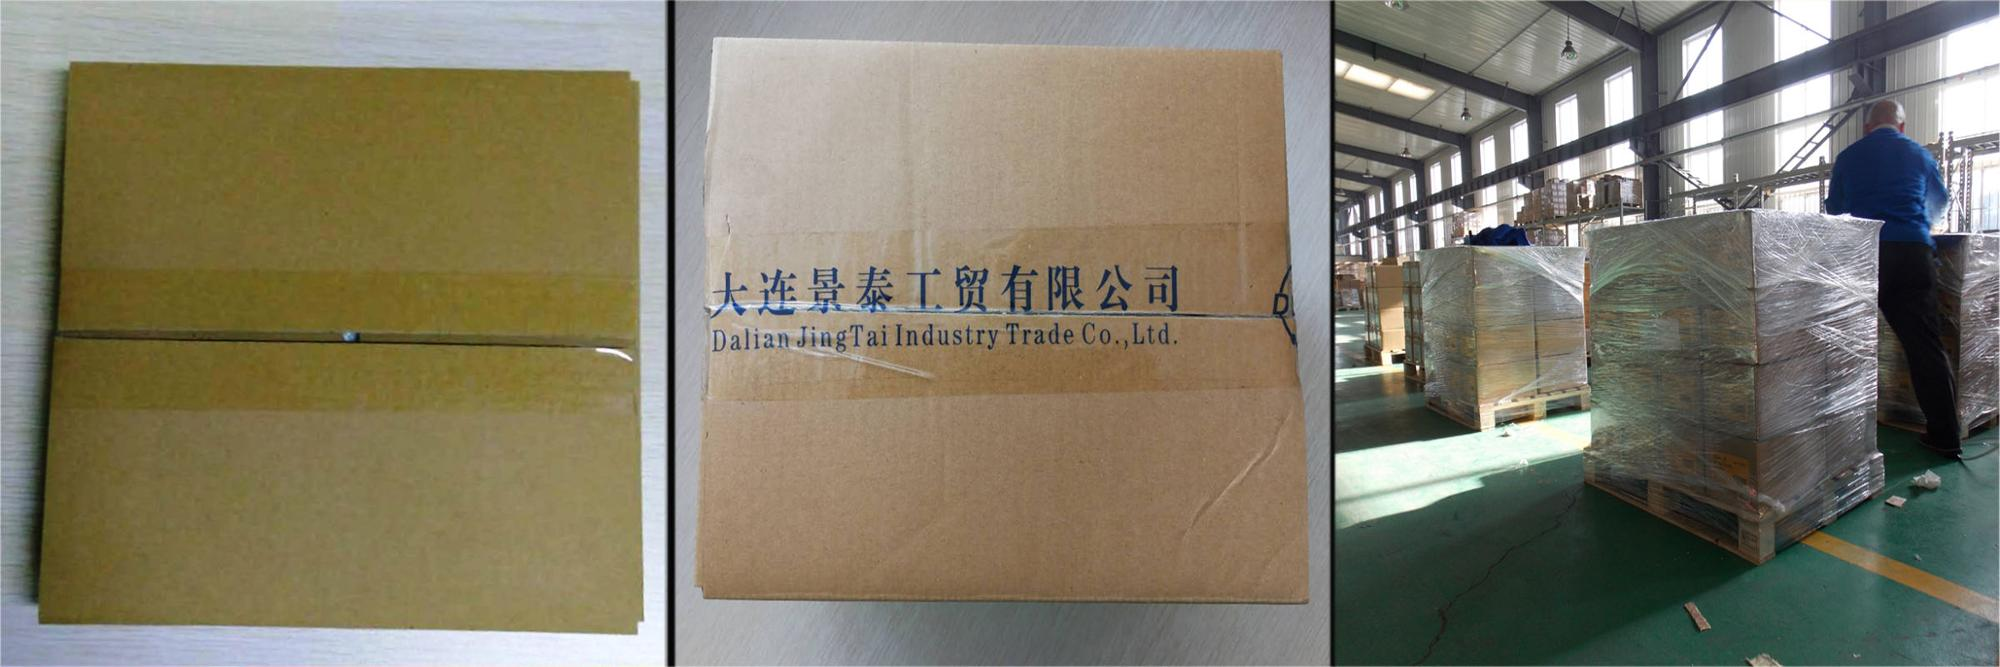 HSS M42 All Purpose Bimetal Reciprocating Saw Blade Alibaba Stock